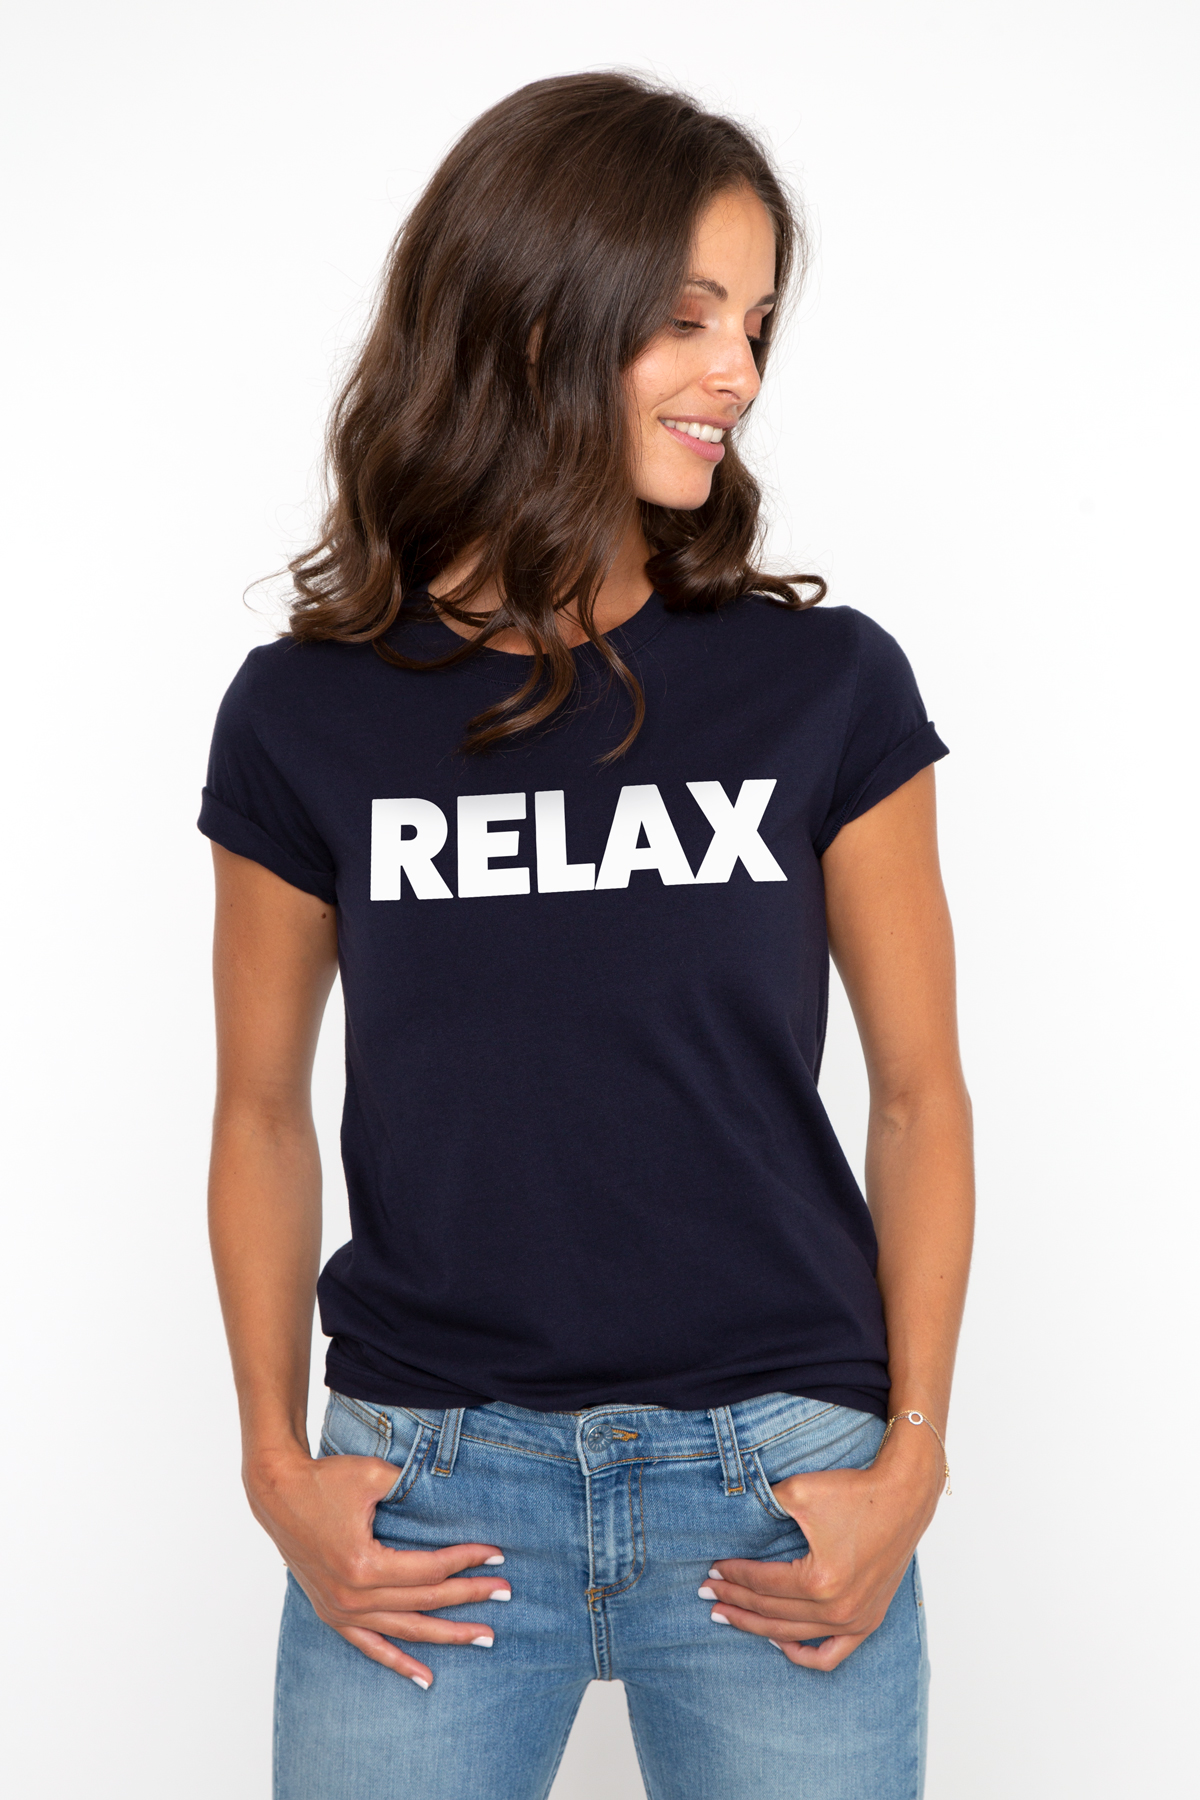 Tshirt RELAX French Disorder